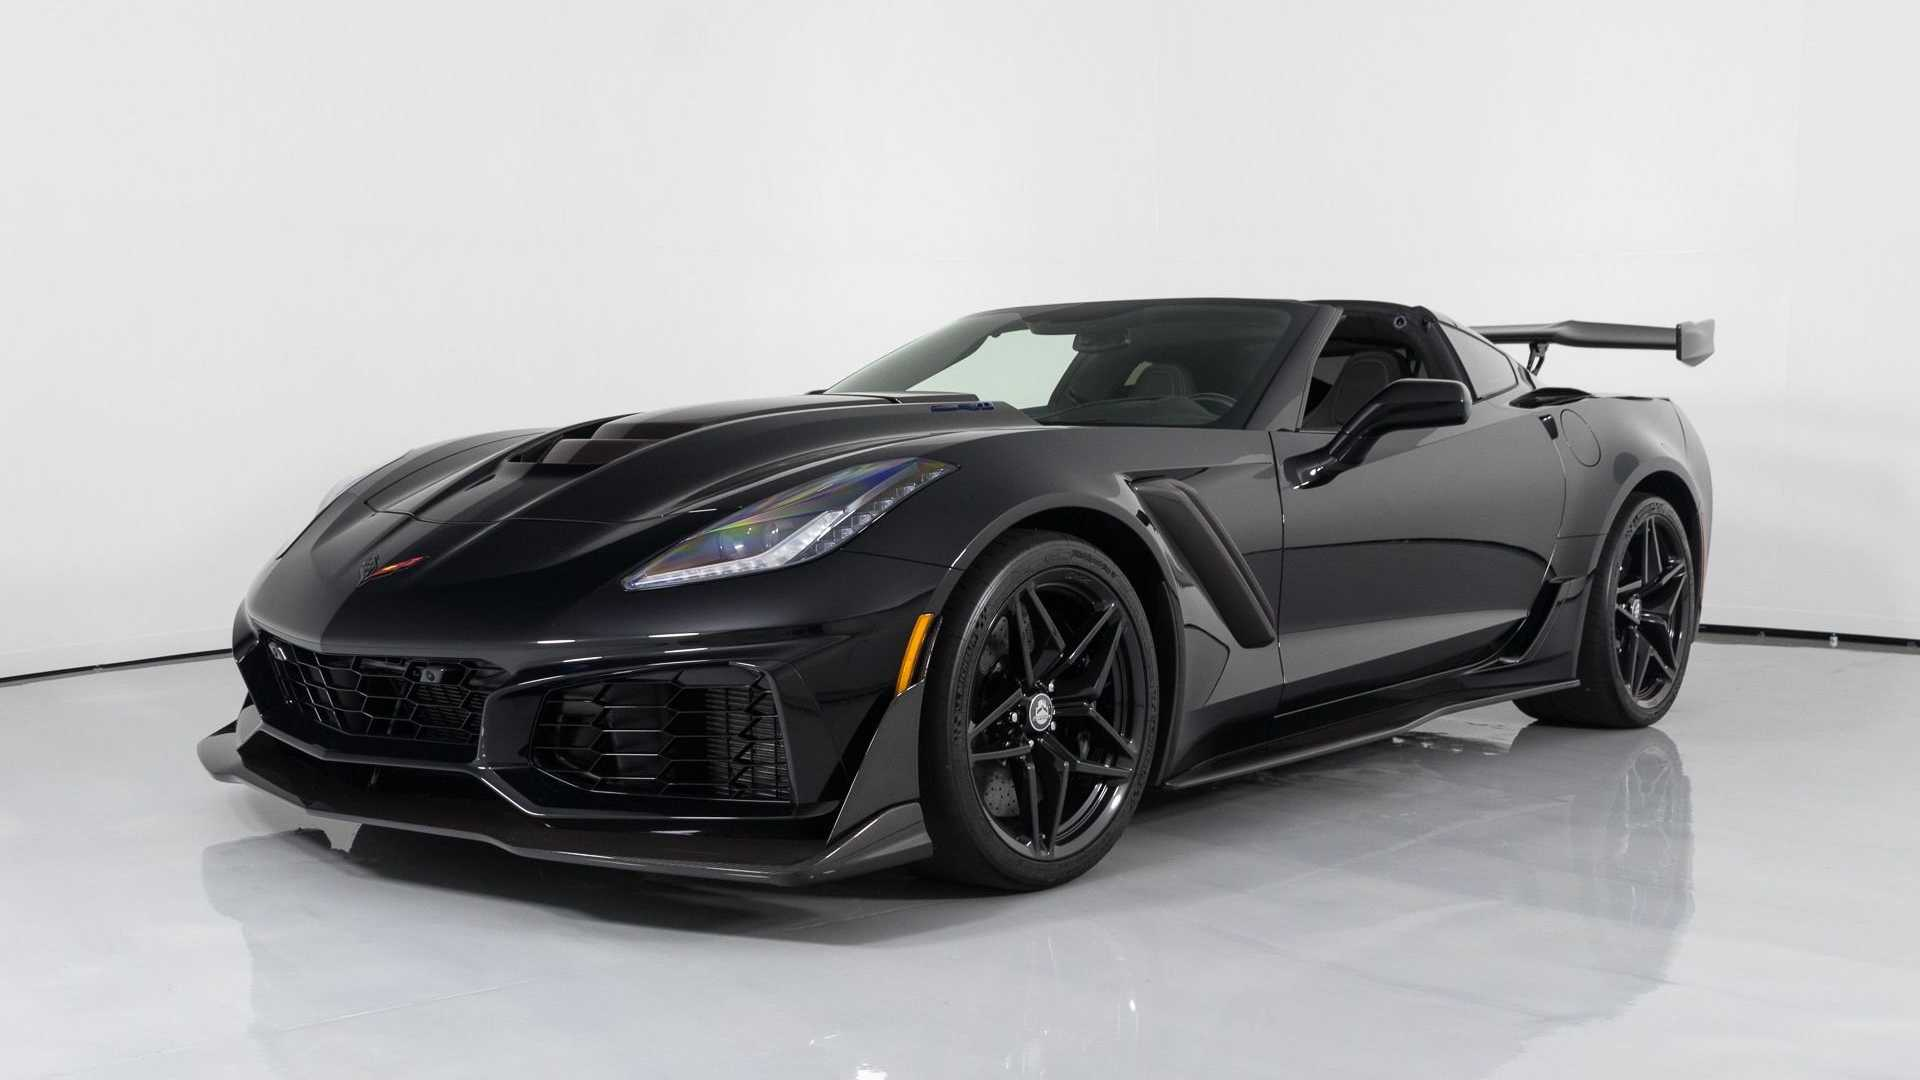 C7 Grand Finale 2019 Chevrolet Corvette Zr1 Motorious